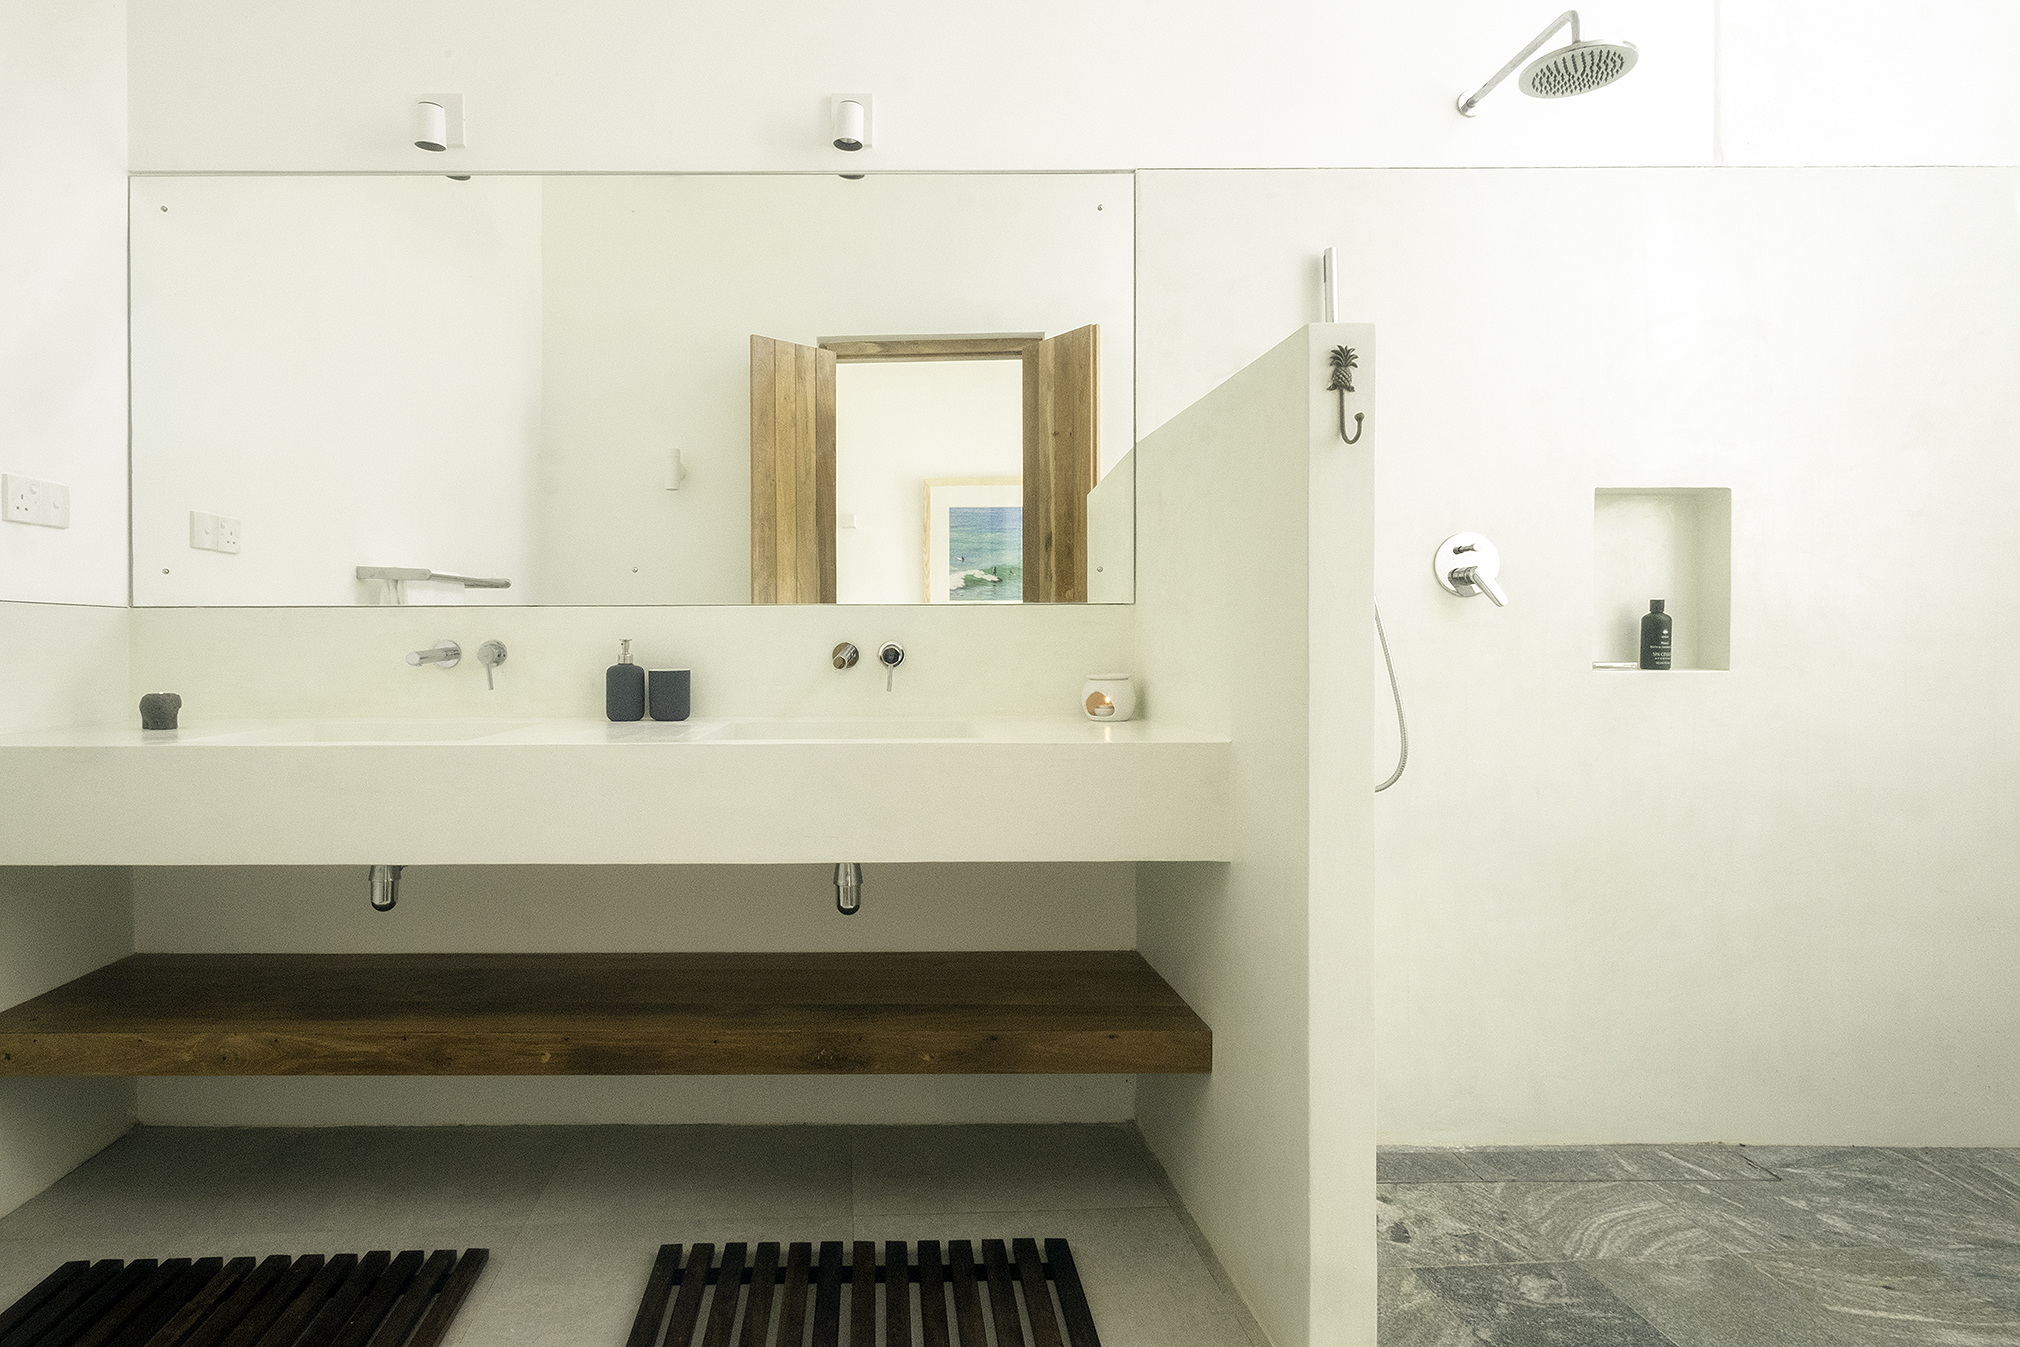 Bedroom 2 ensuite with double basin and rain shower